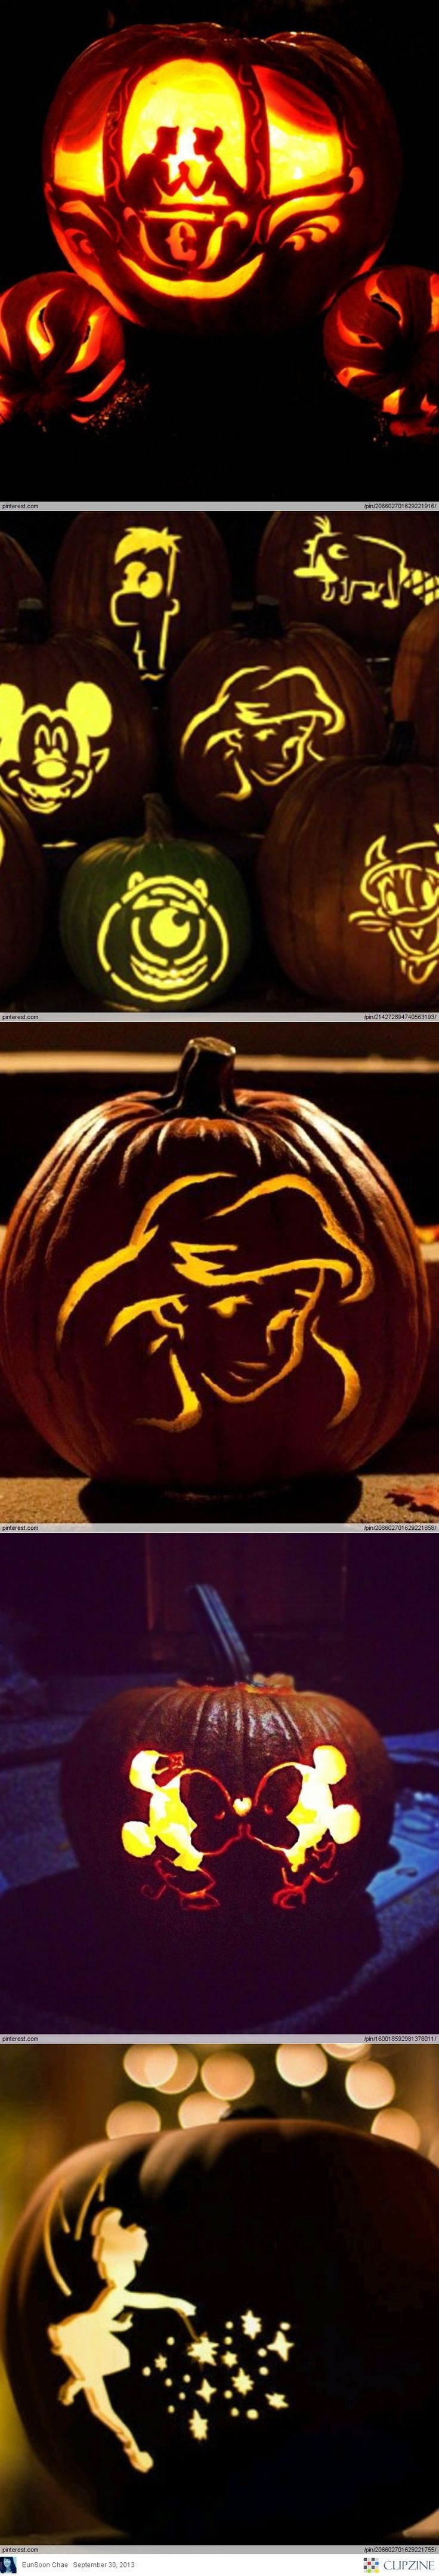 Pumpkin Carving Best 25 Disney Pumpkin Carving Ideas On Pinterest Disney